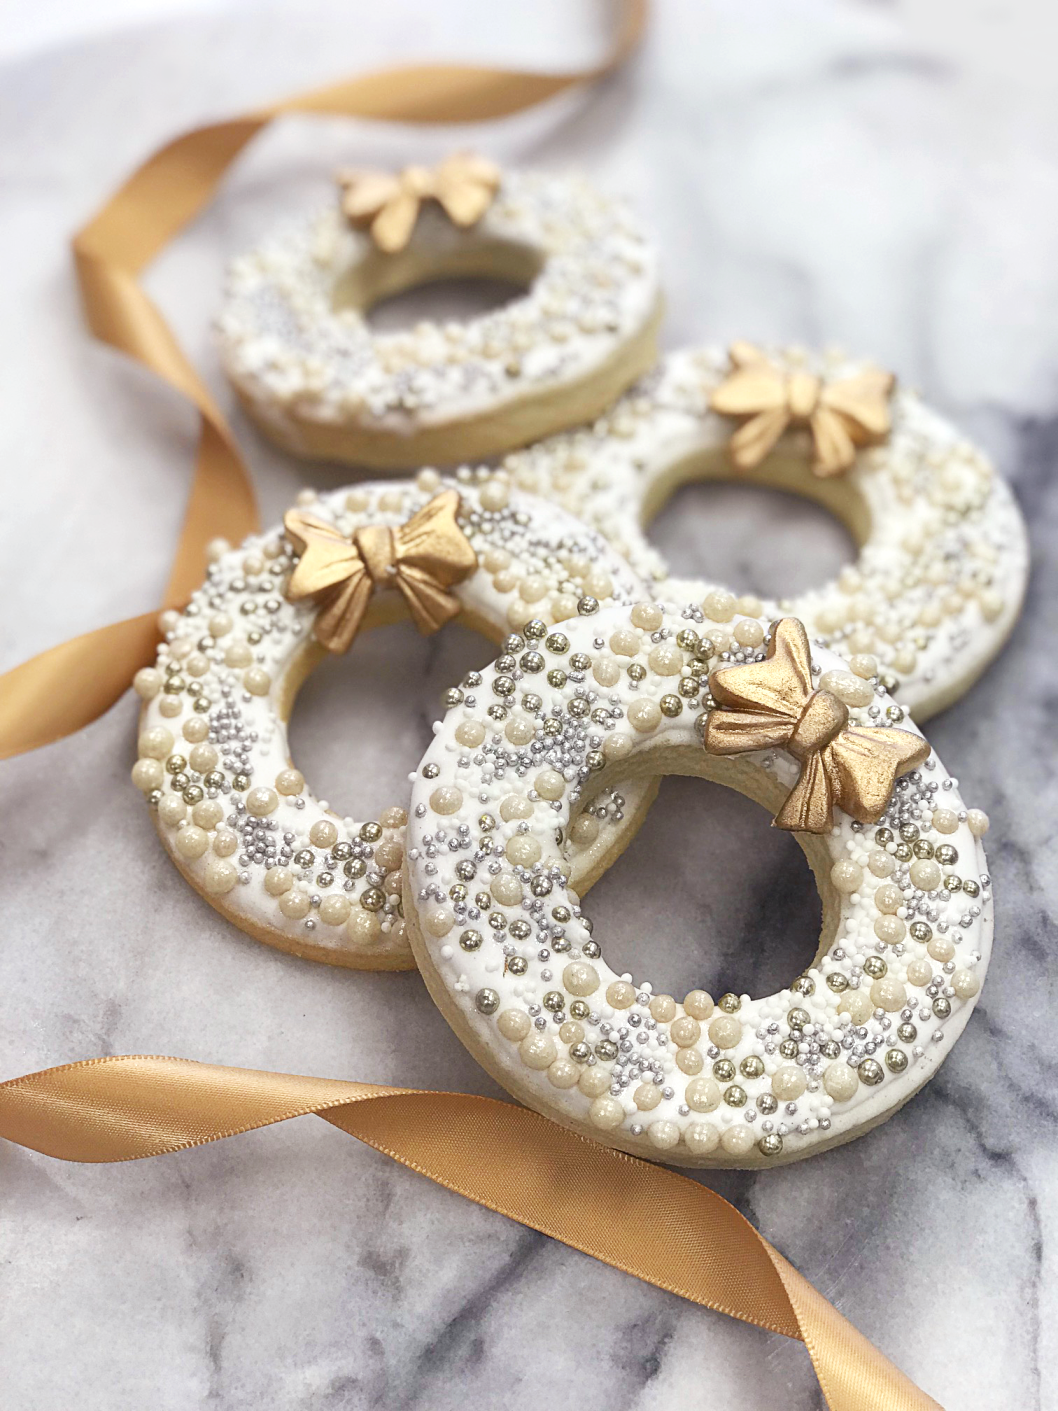 Whippt Desserts - Holiday Sugar Cookies 2017 Wreath